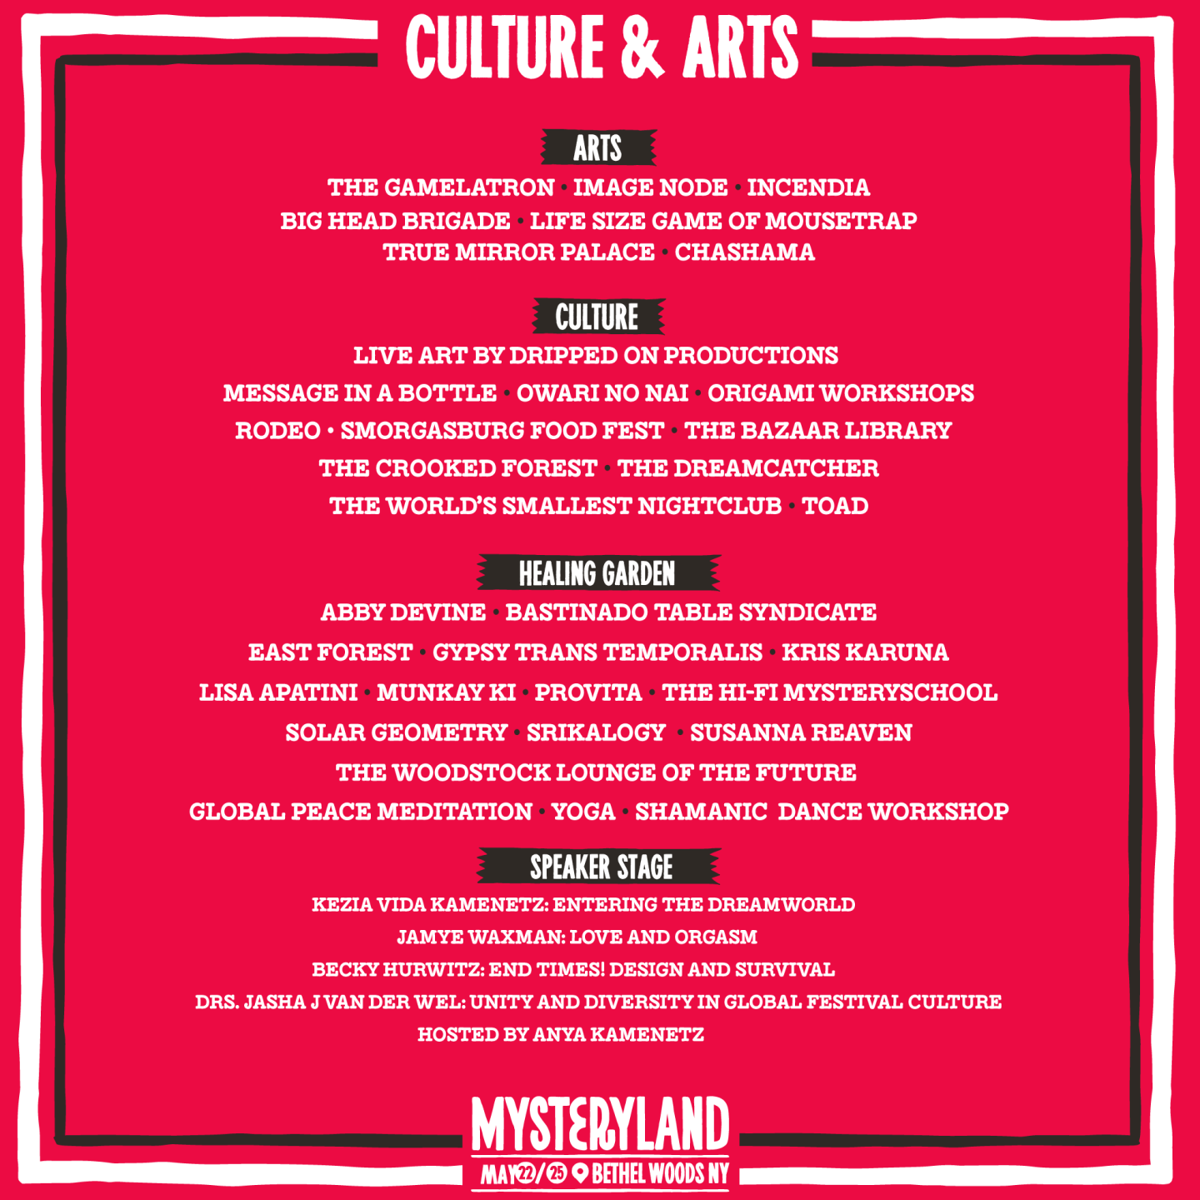 Arts and Culture Lineup